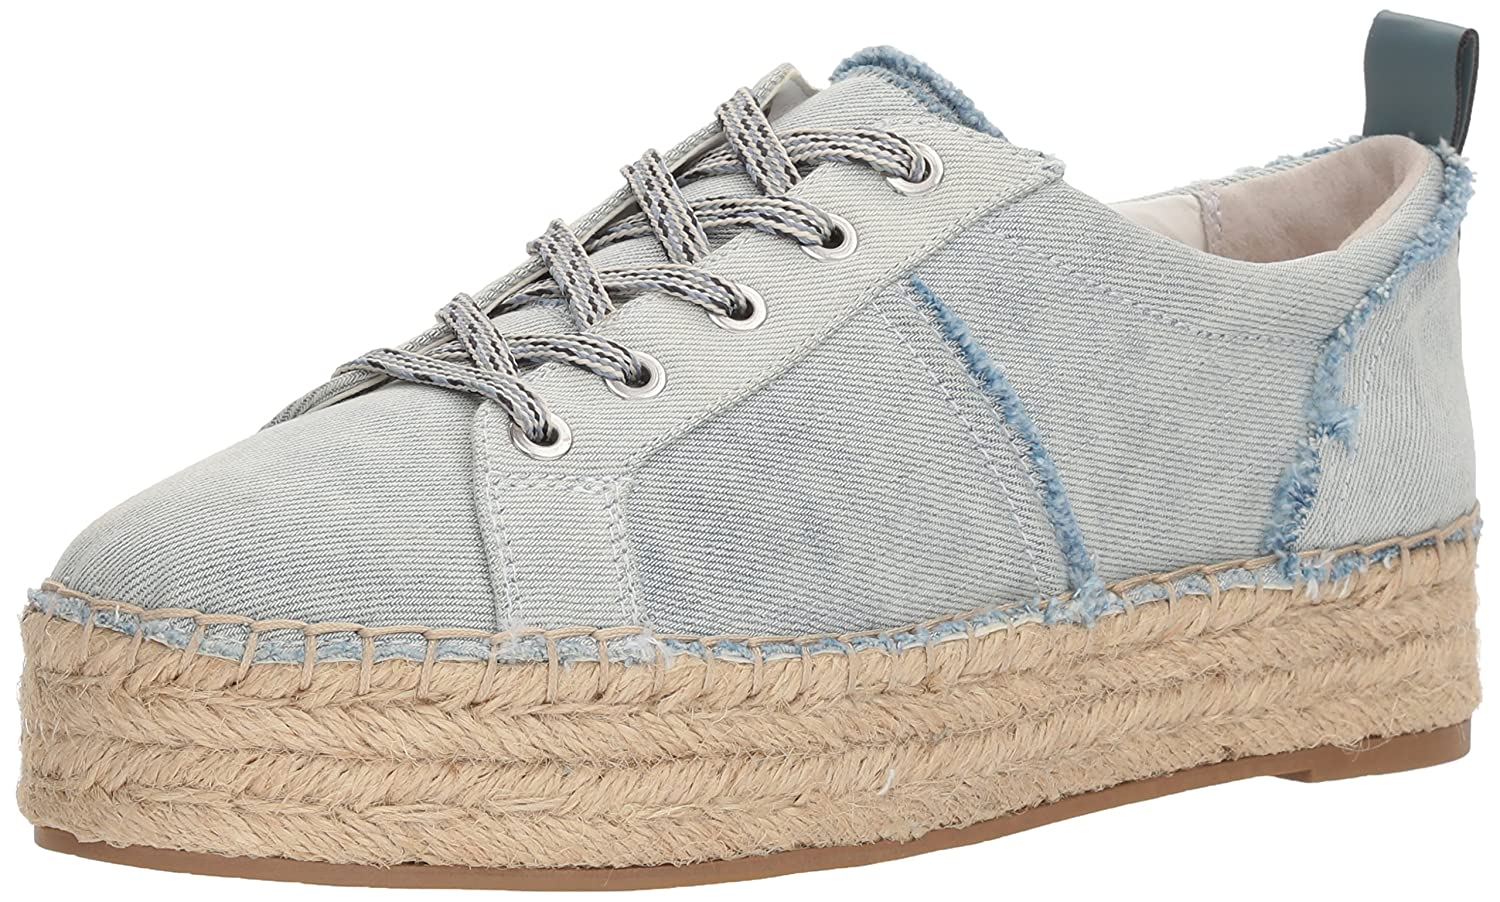 Sam Edelman Women's Carleigh Sneaker B072R8J259 9 B(M) US|Light Blue